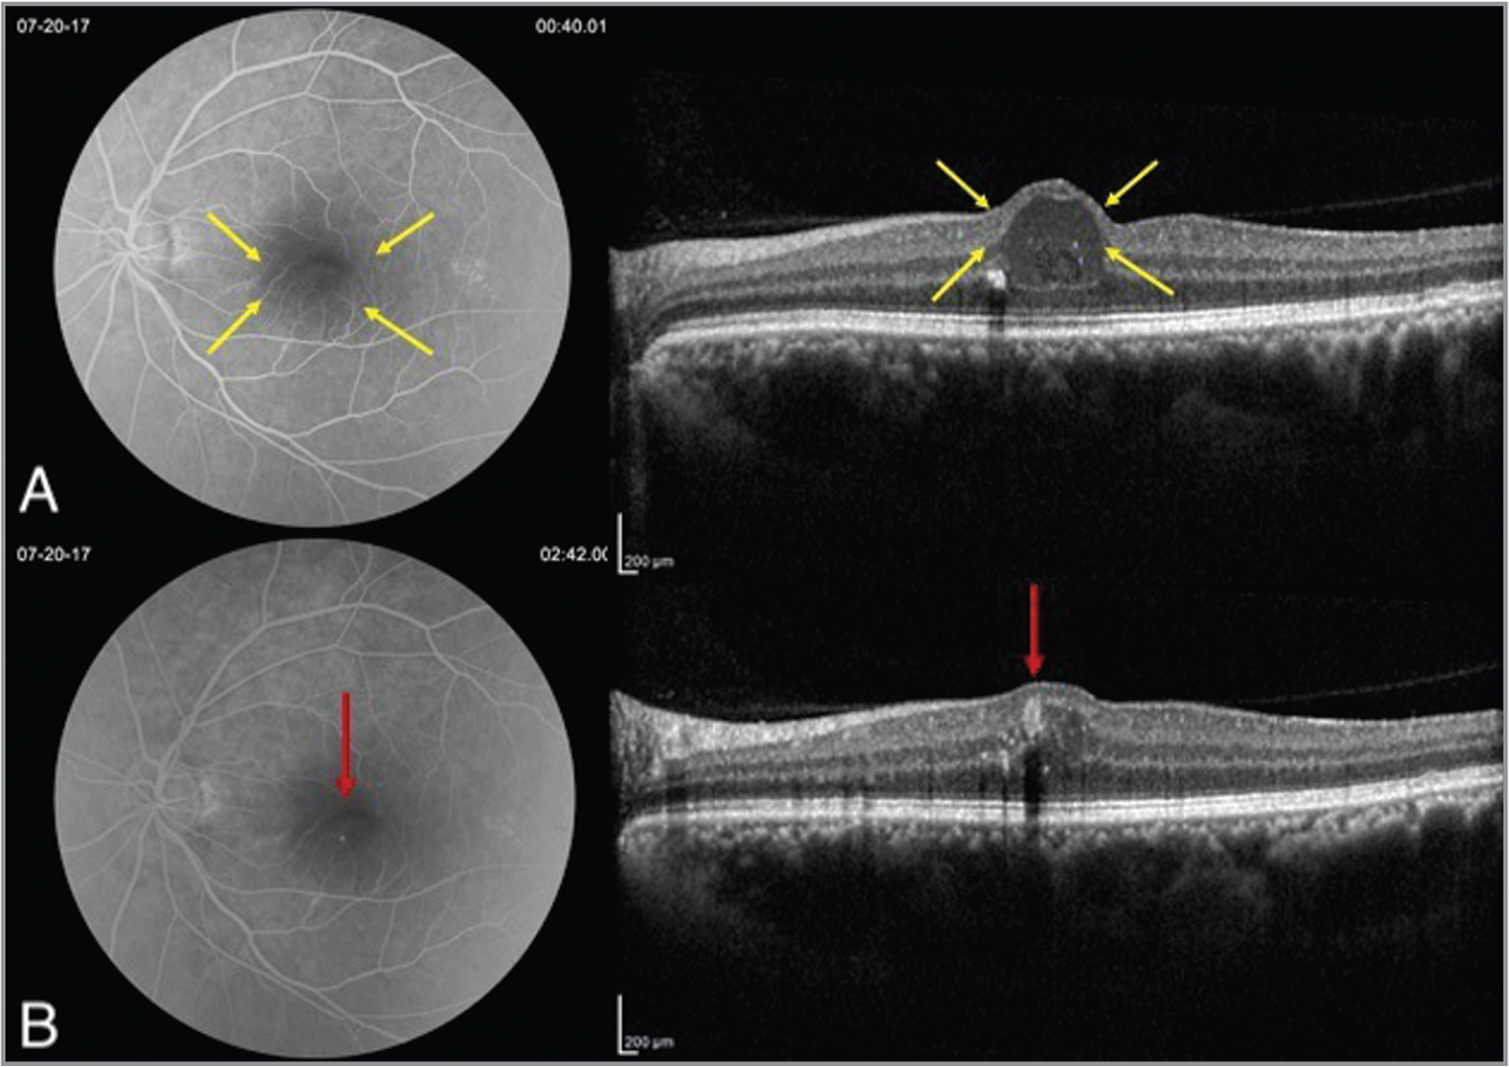 (A, B) Fluorescein angiography (FA) images (left) with corresponding optical coherence tomography (OCT) images (right). (A) Note early hyperfluorescence on FA corresponding with cystic intraretinal fluid on OCT (yellow arrows). (B) Punctate area of late leakage defines perifoveal exudative vascular anomalous complex lesion on FA. On OCT, it is seen as an ovoid hyperreflective perifoveal aneurysm with a hyporeflective lumen (red arrow).